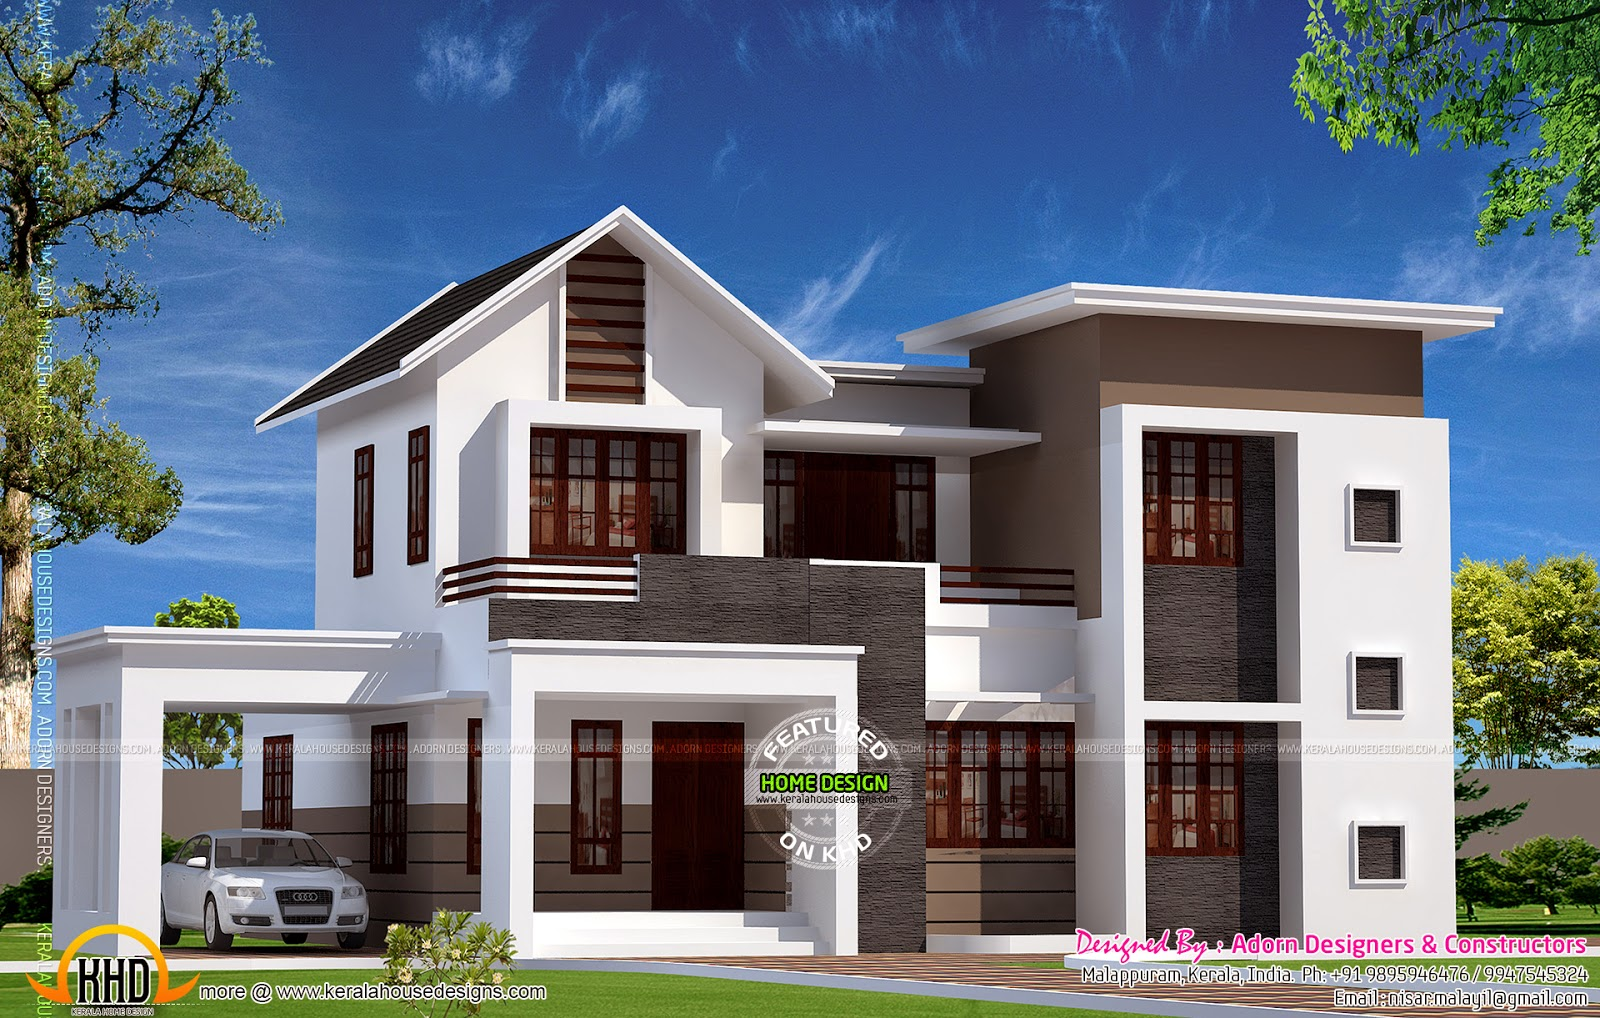 New house design in 1900 sq feet kerala home design and for Latest building designs and plans